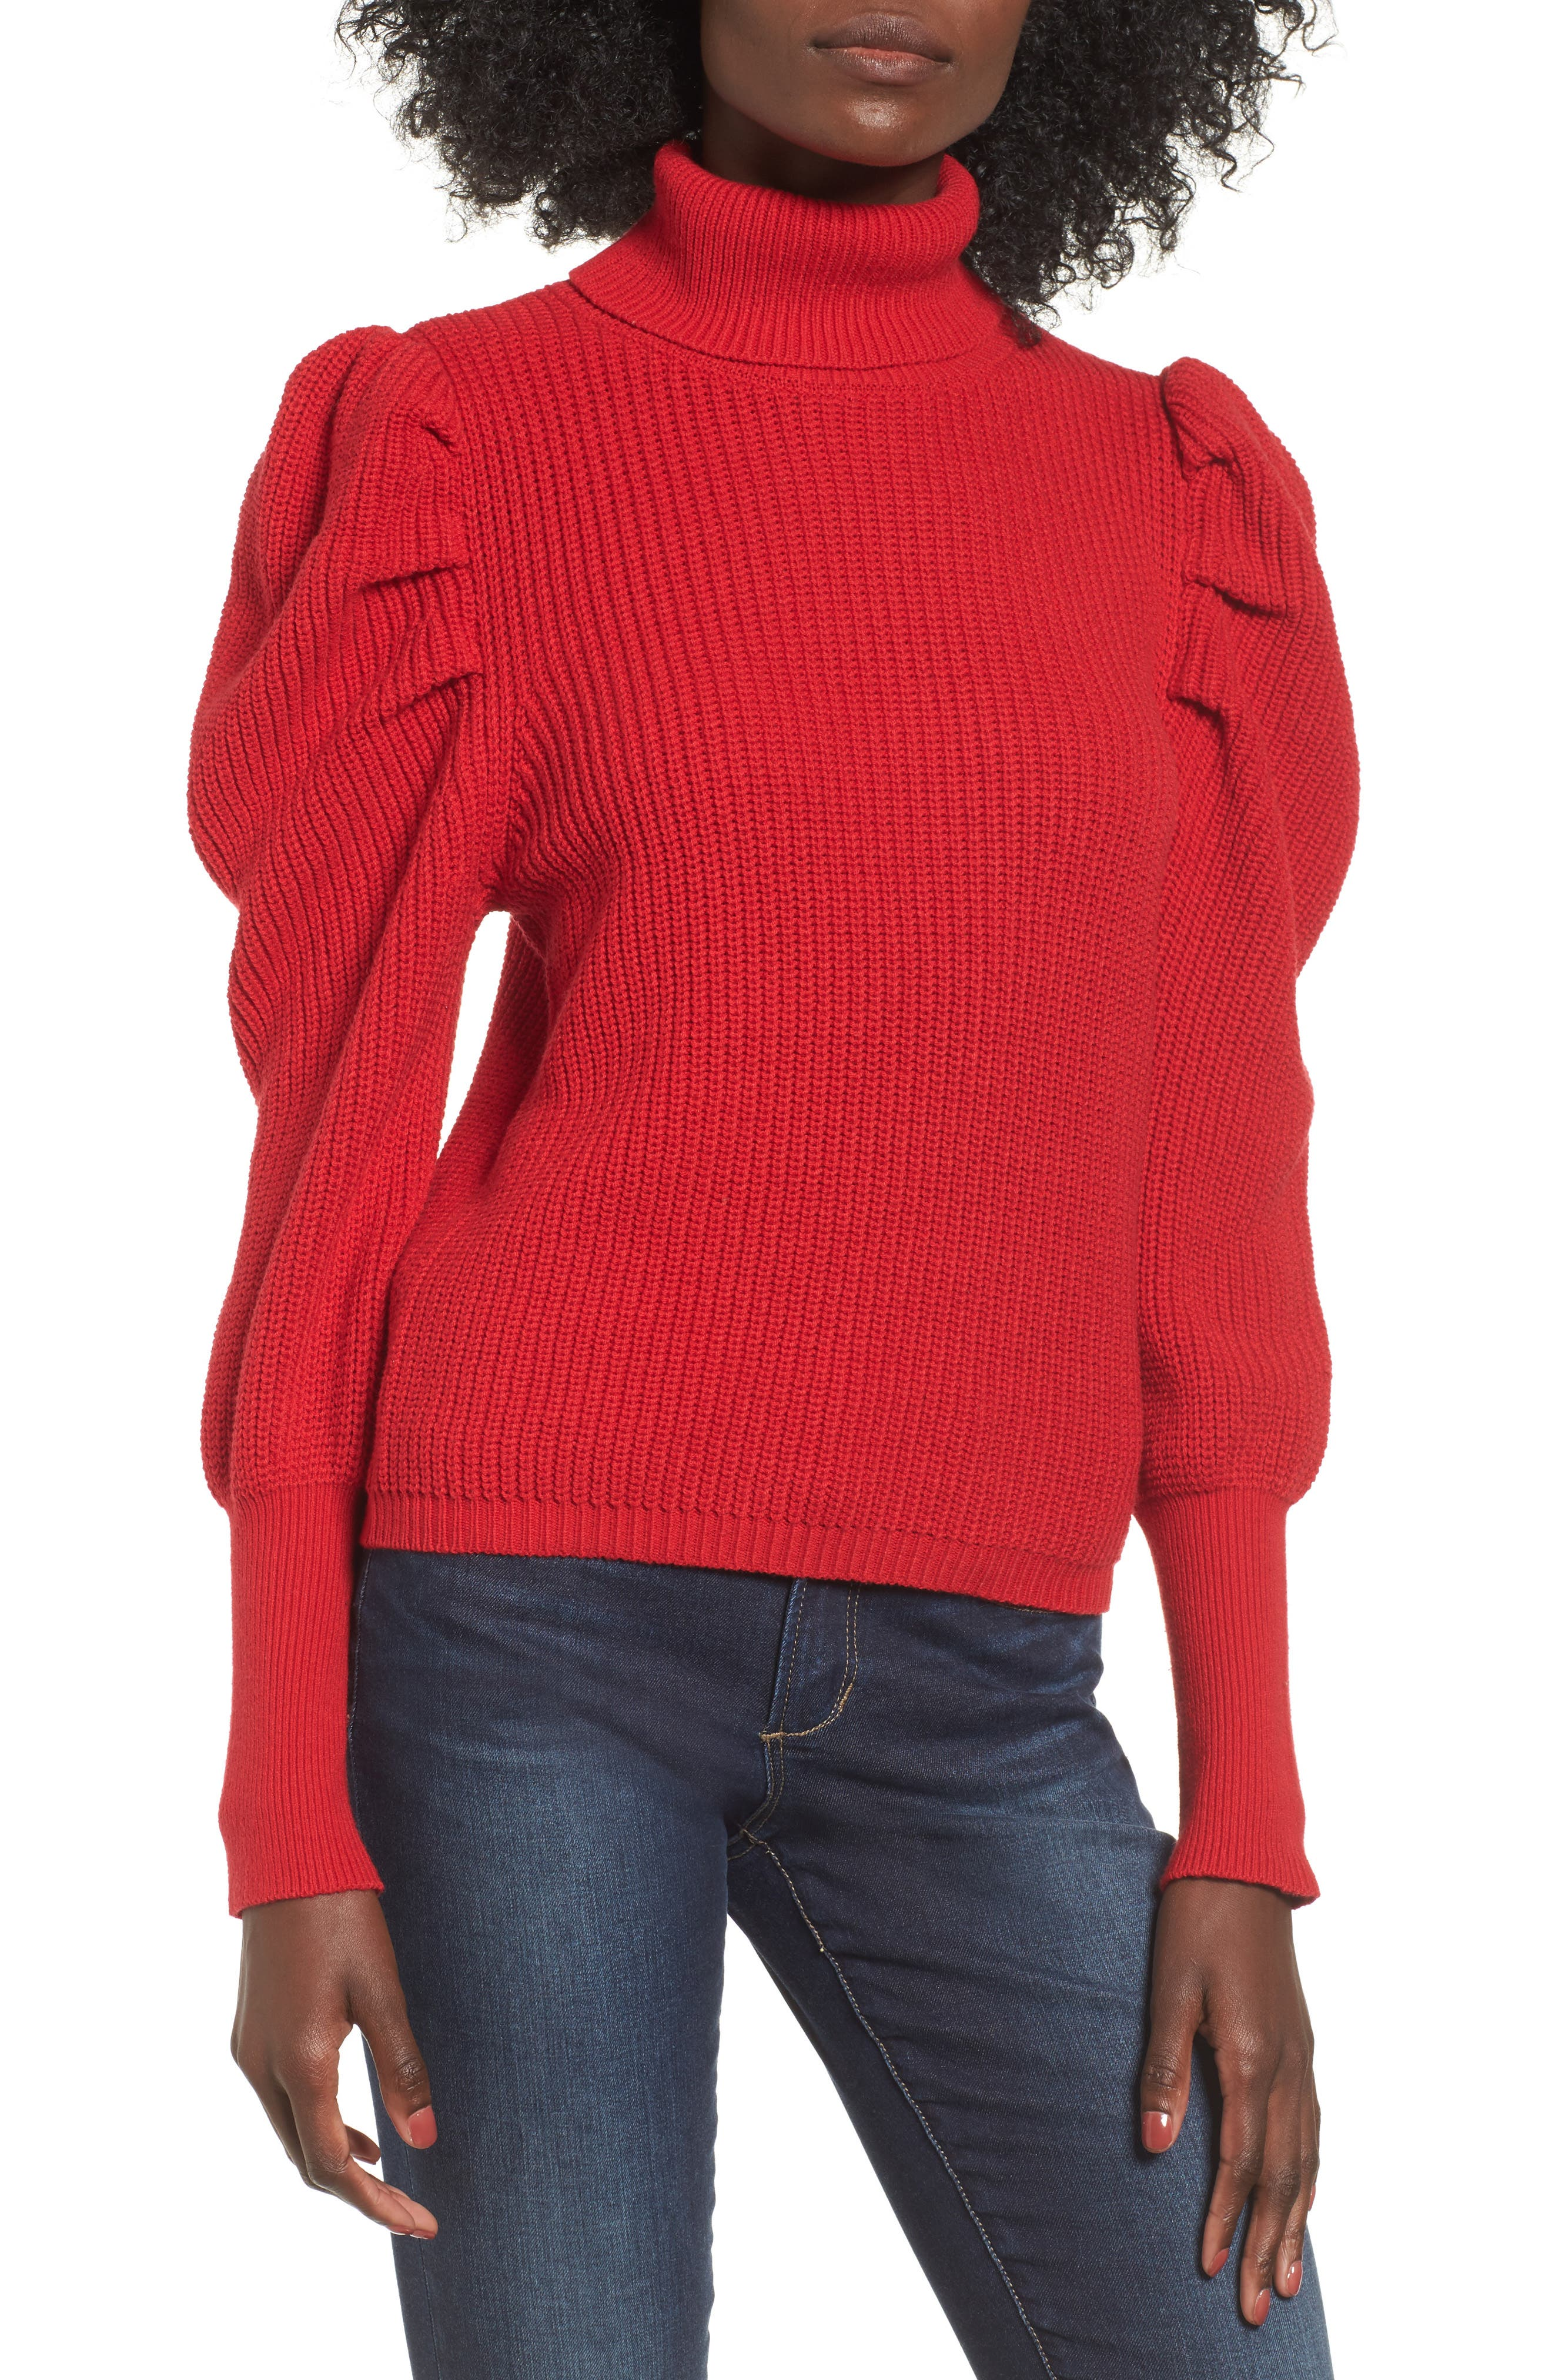 Puff Sleeve Turtleneck Sweater,                             Main thumbnail 1, color,                             Red Couture